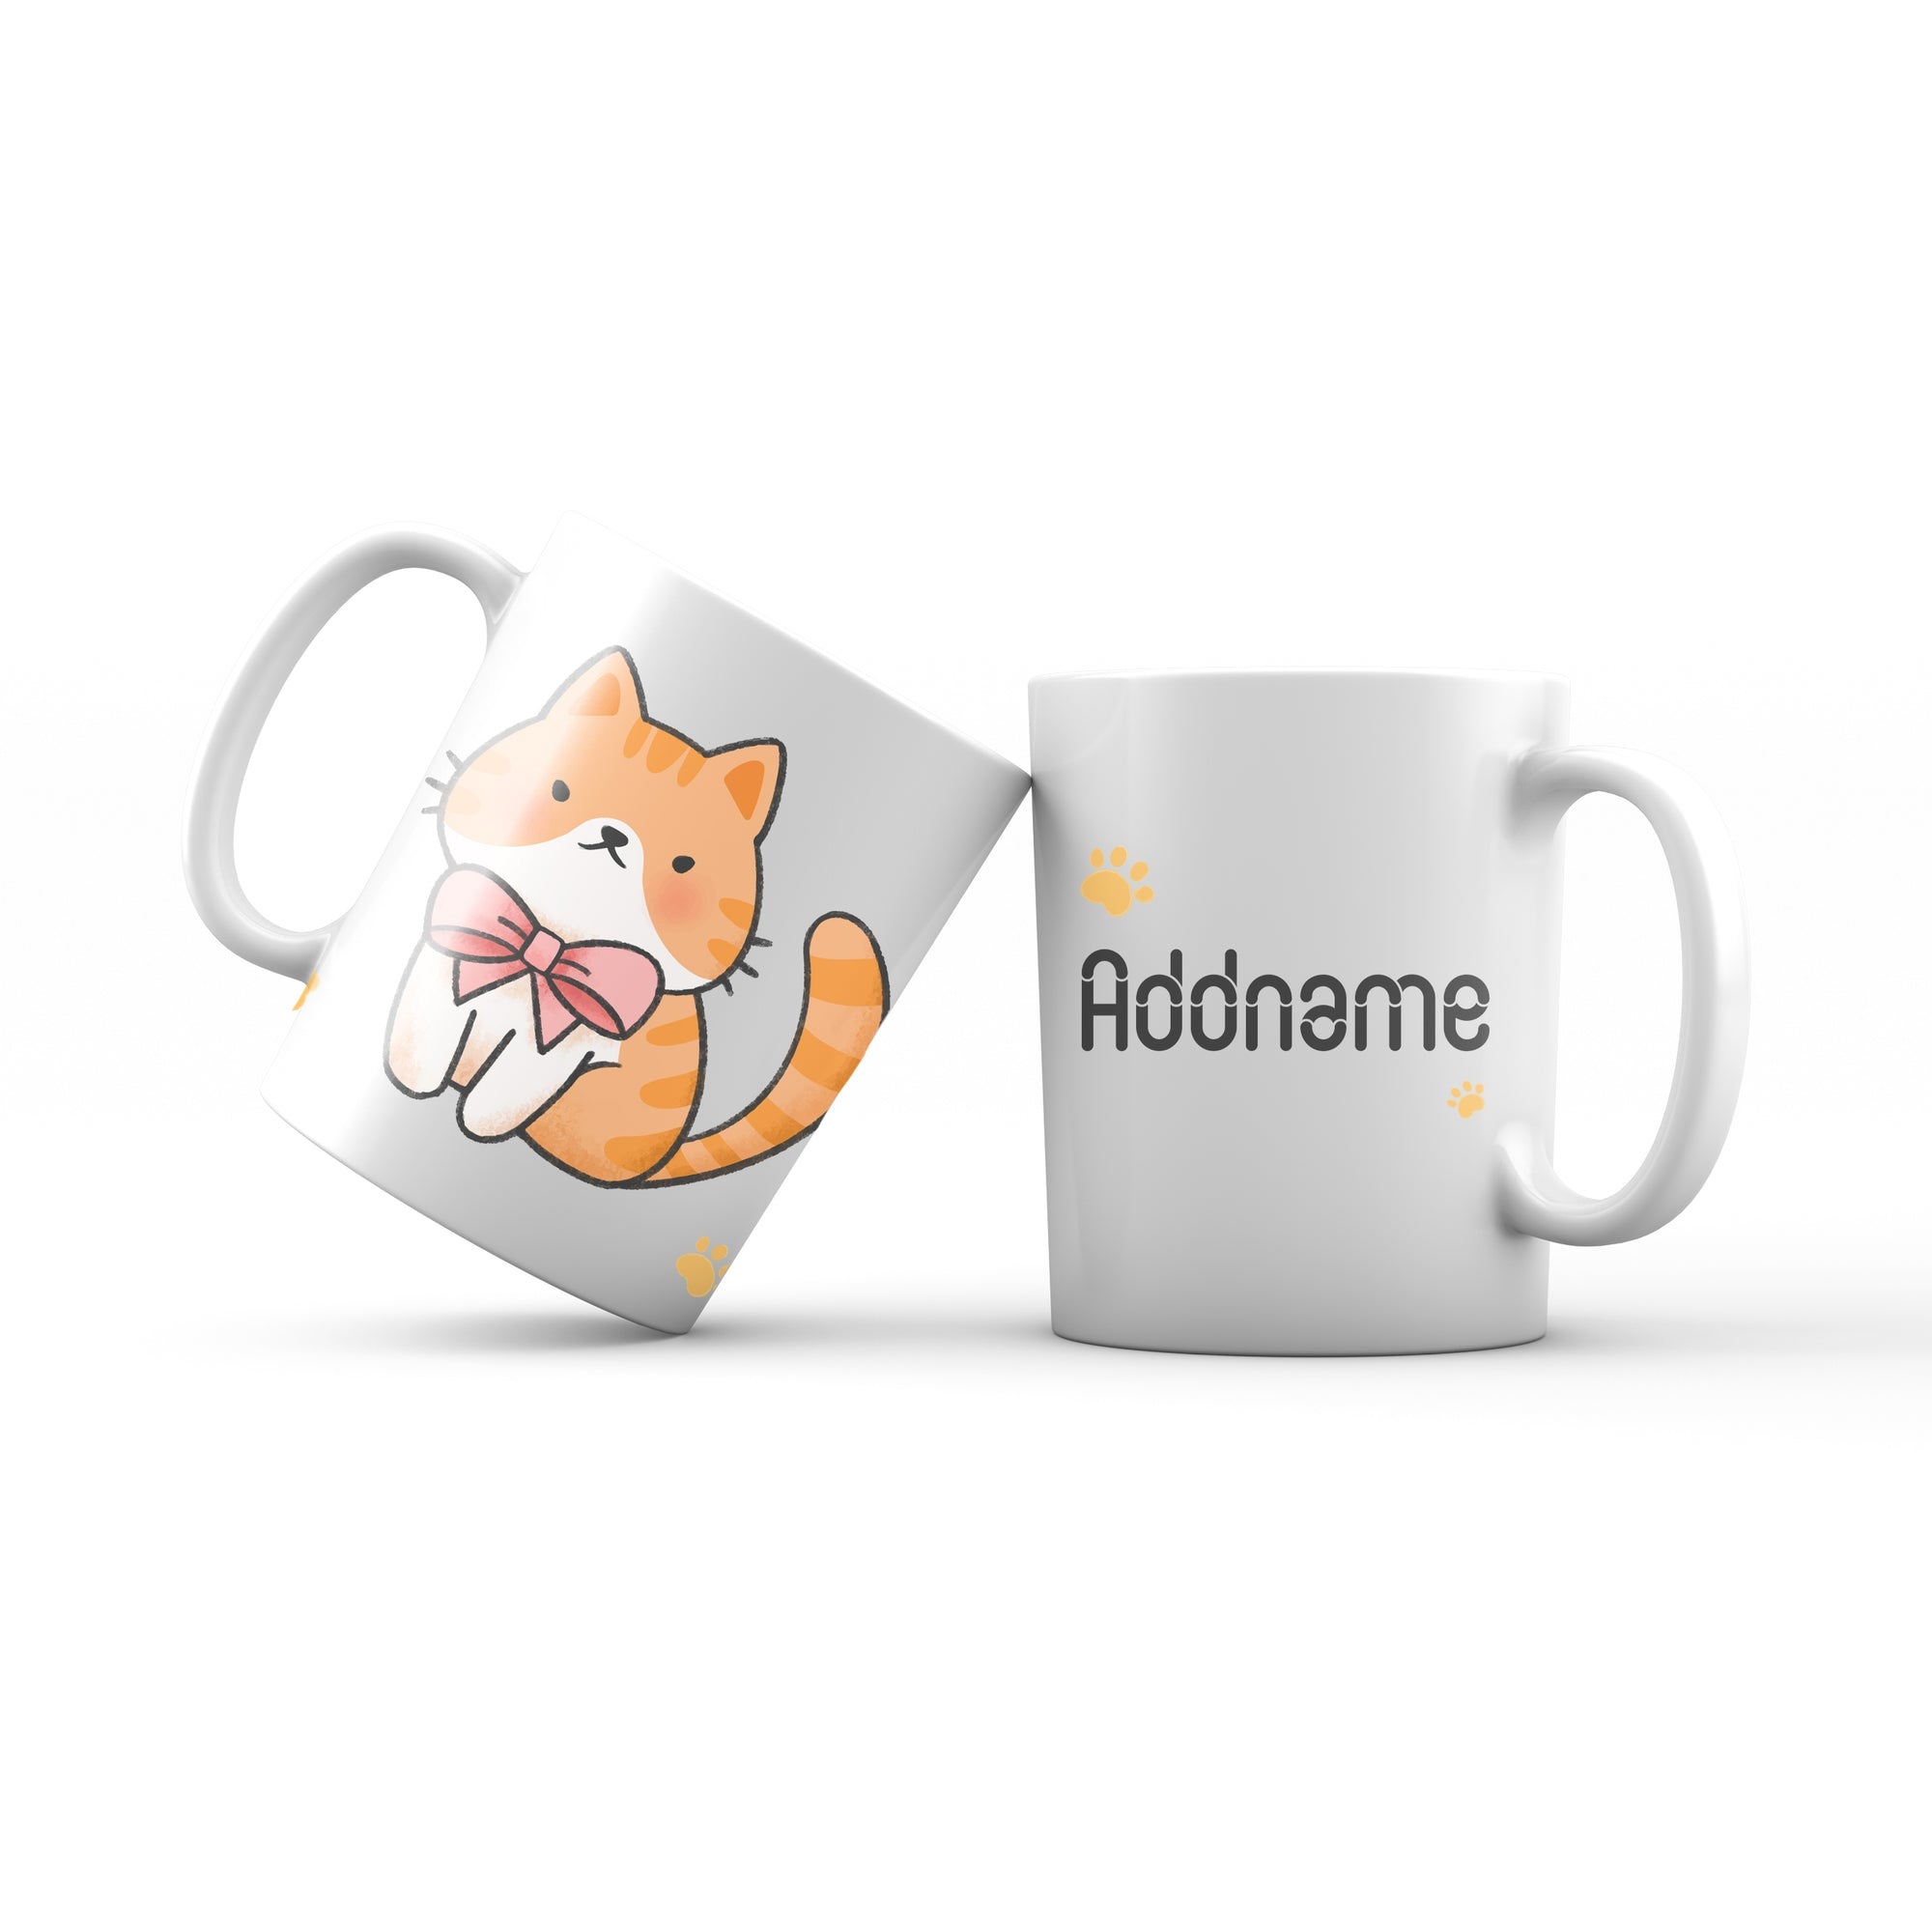 Cute Hand drawn Animals Cats Brown Cat With Ribbon Addname Mug